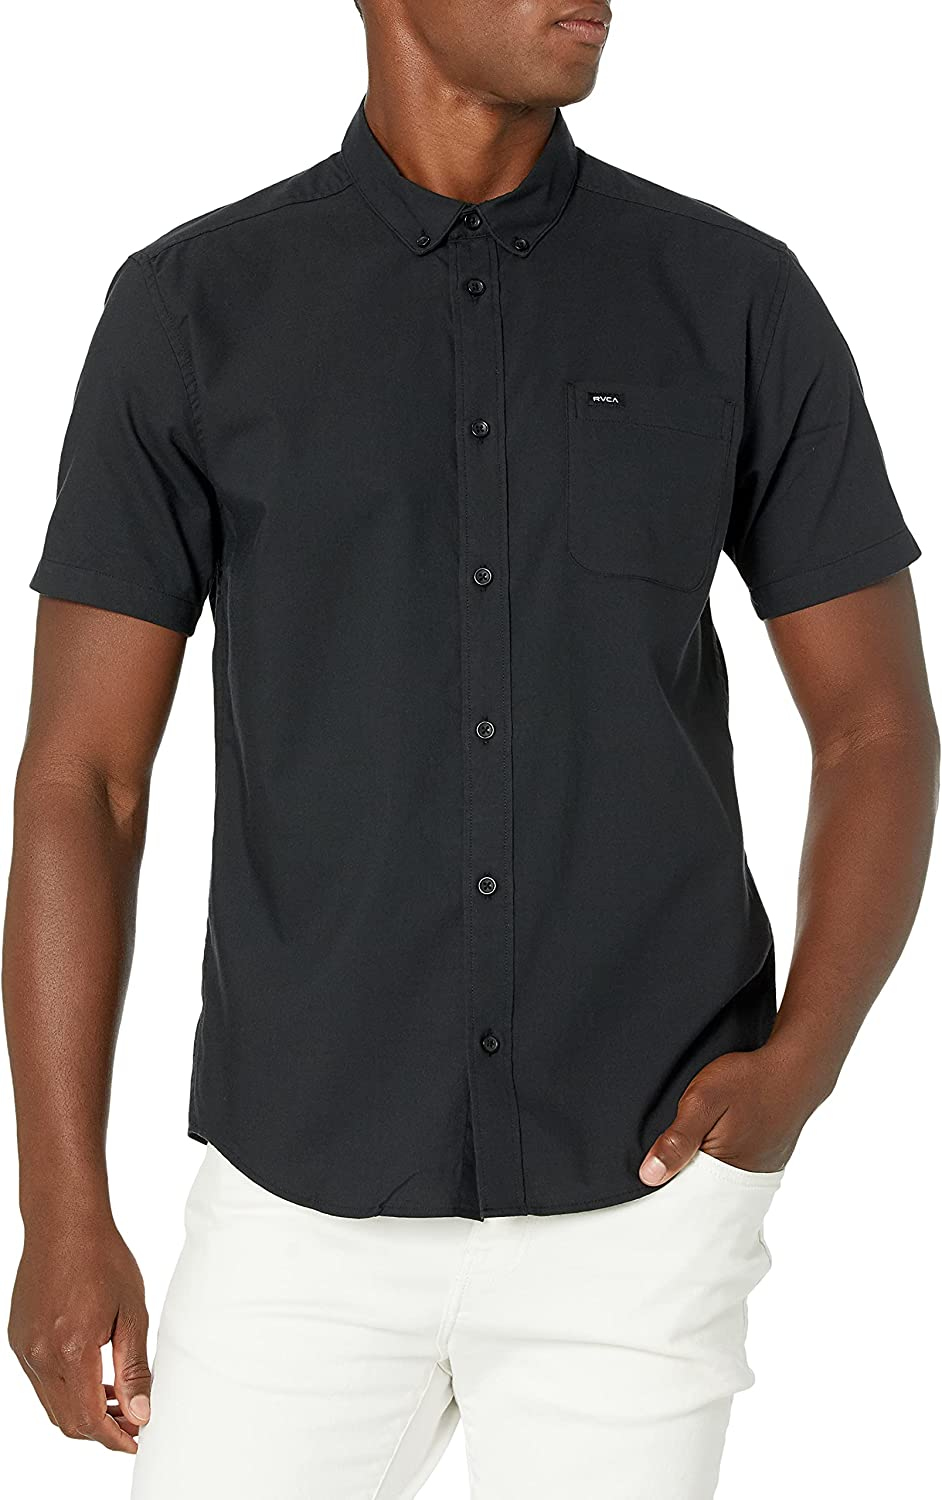 RVCA Men's Slim Fit Short Sleeve Oxford Stretch Woven Button Up Shirt